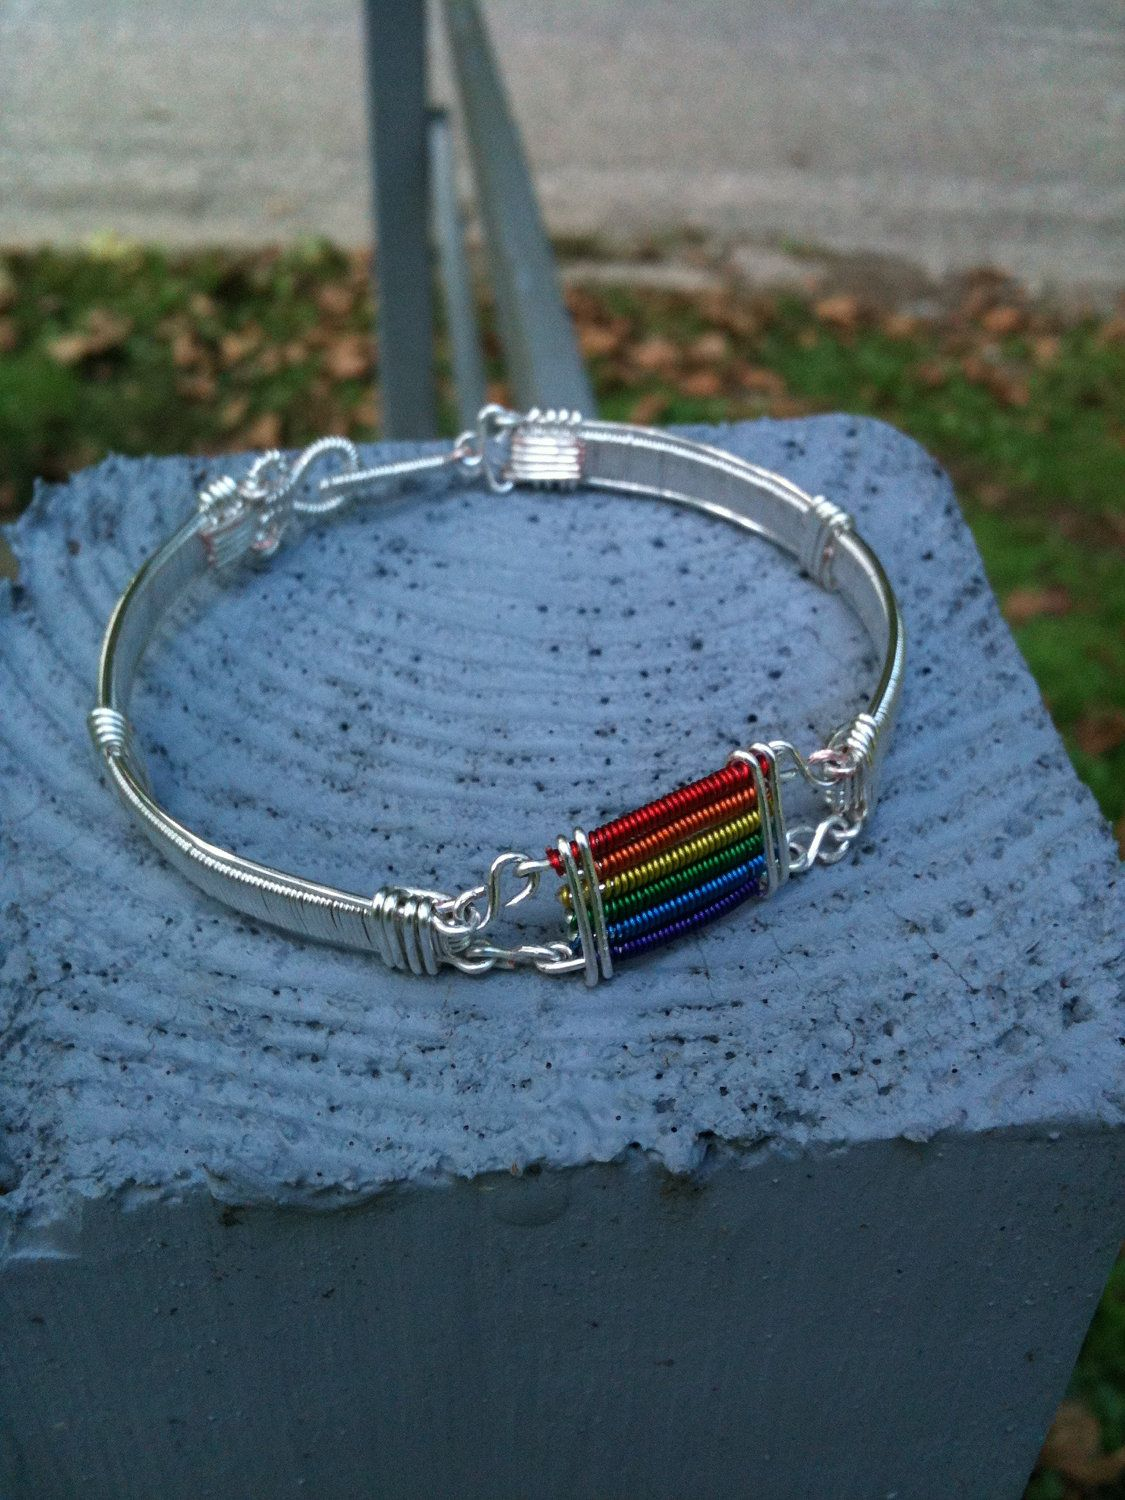 Handmade item Materials: 20 gauge silver plated wire, 26 gauge ...